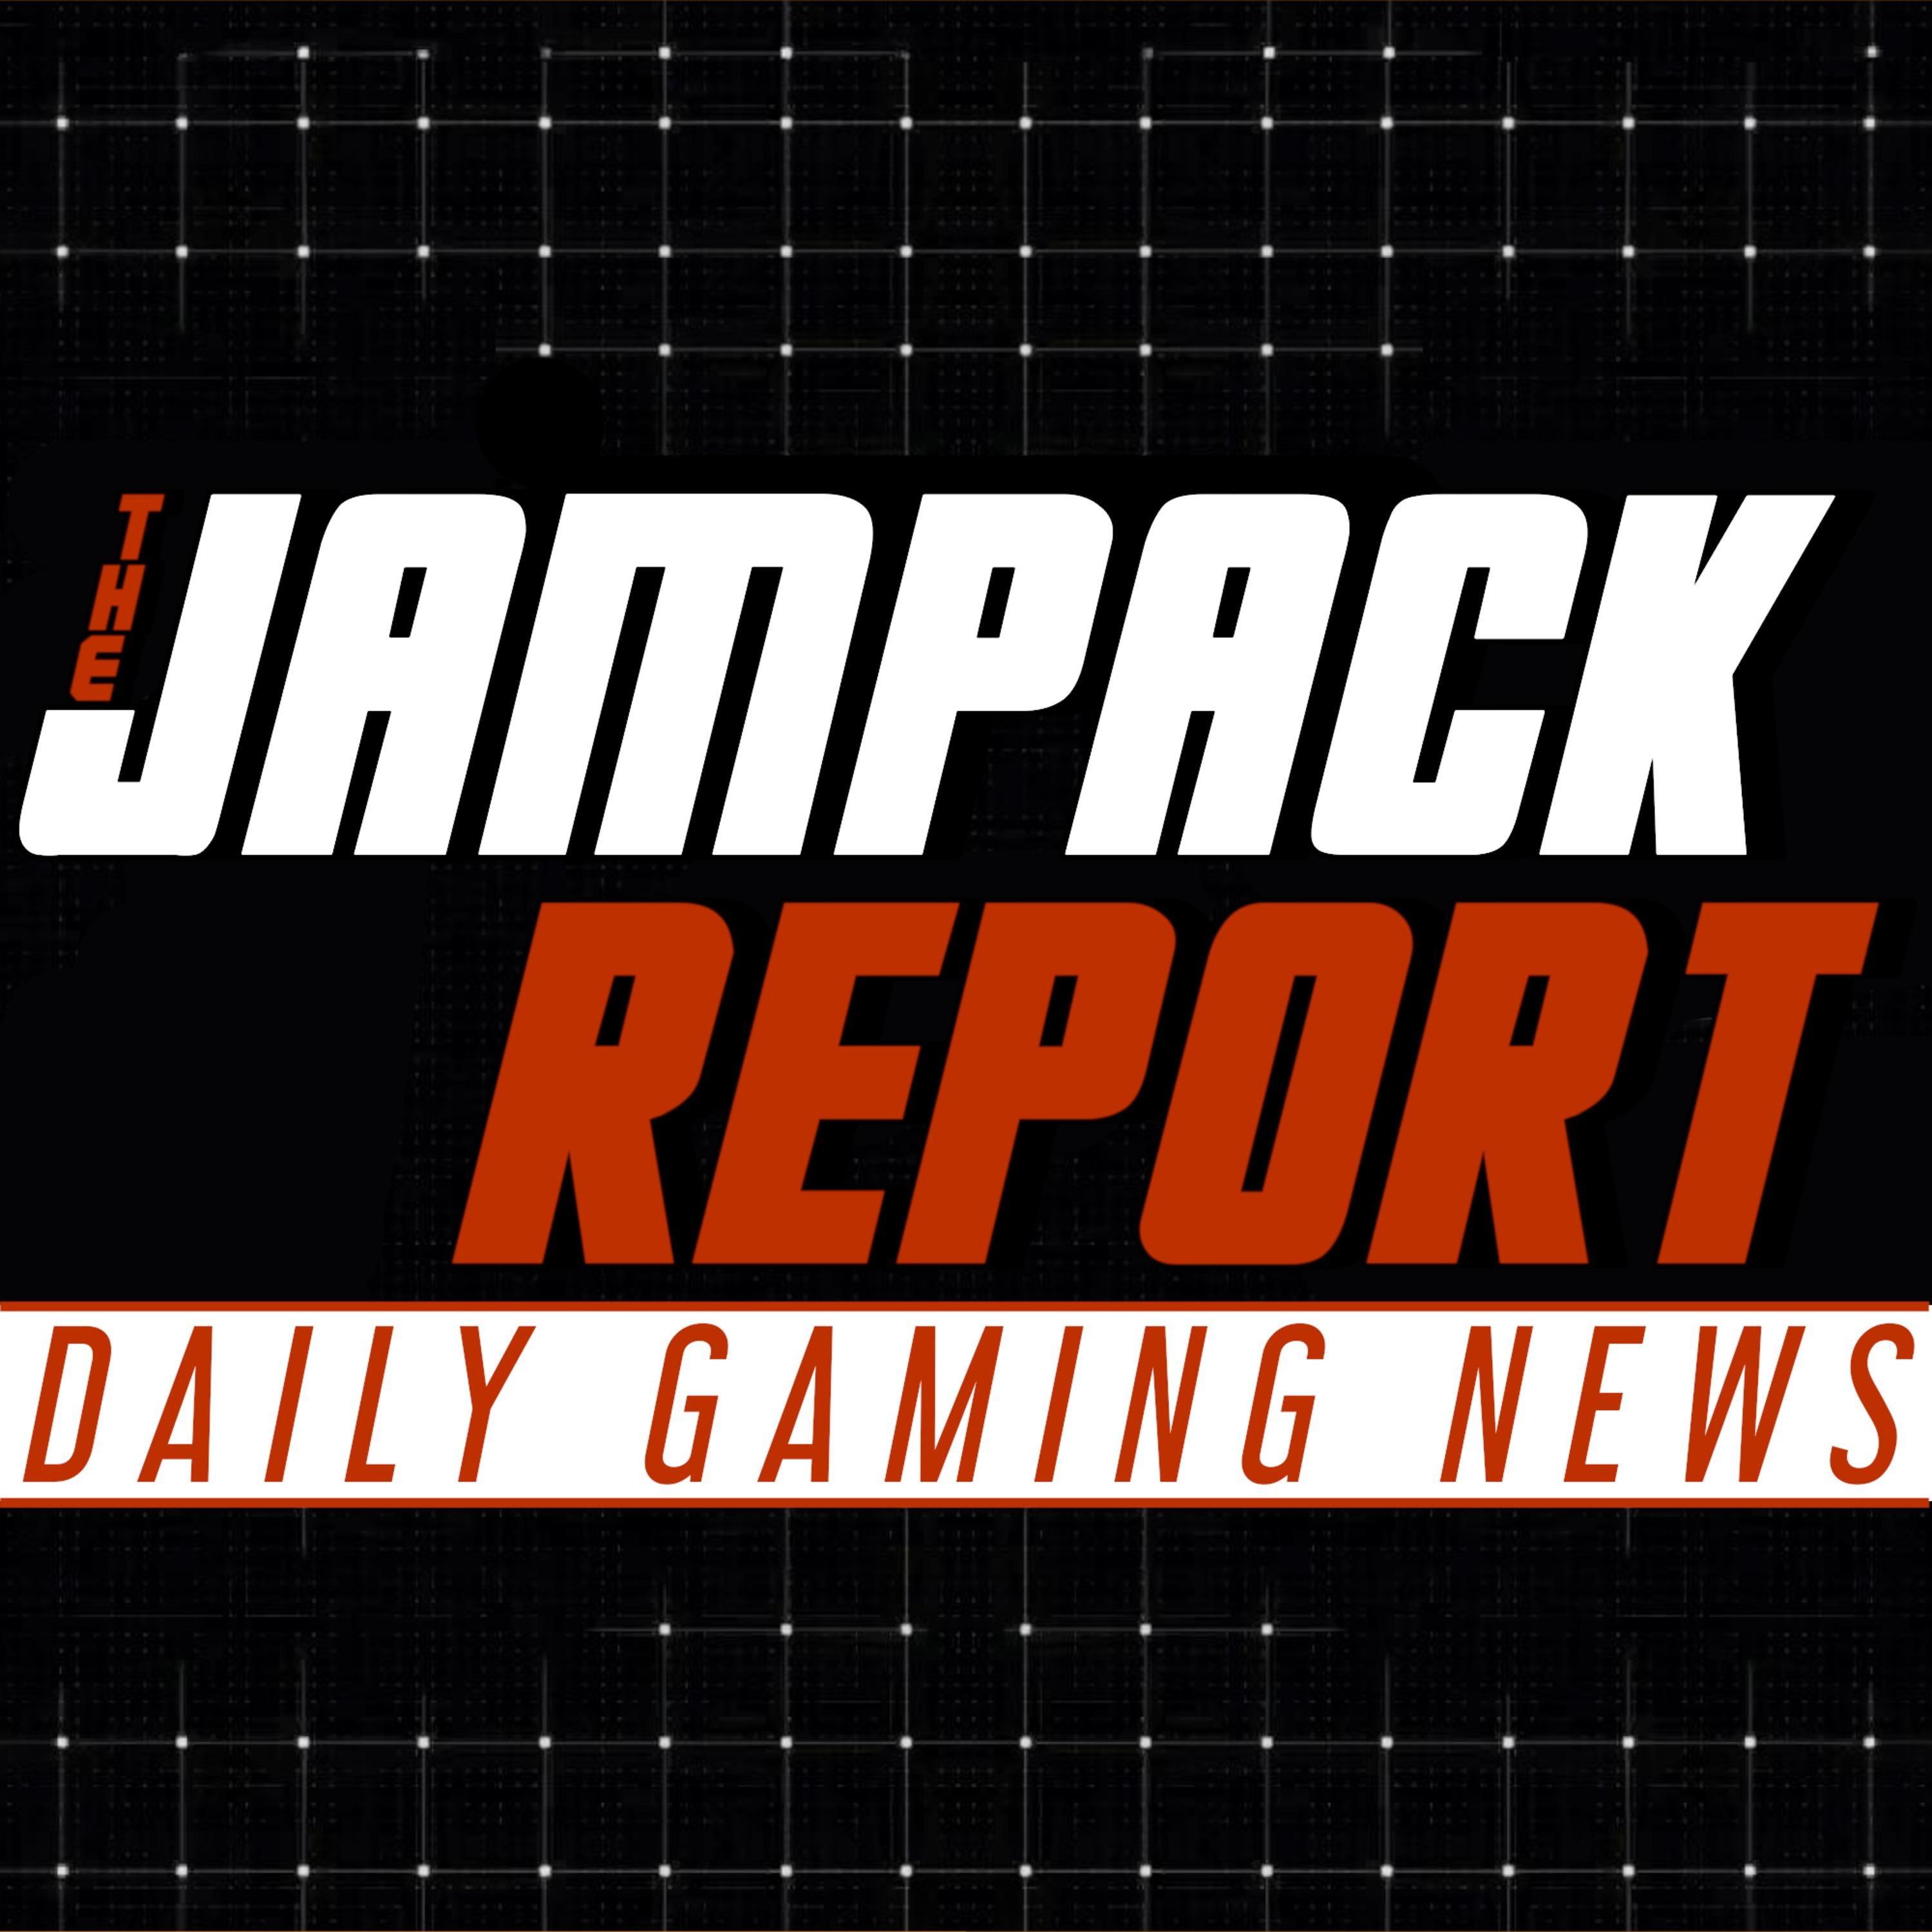 Call of Duty: Modern Warfare Ditches Loot Boxes, Adopts Battle Pass System | The Jampack Report 10.18.19